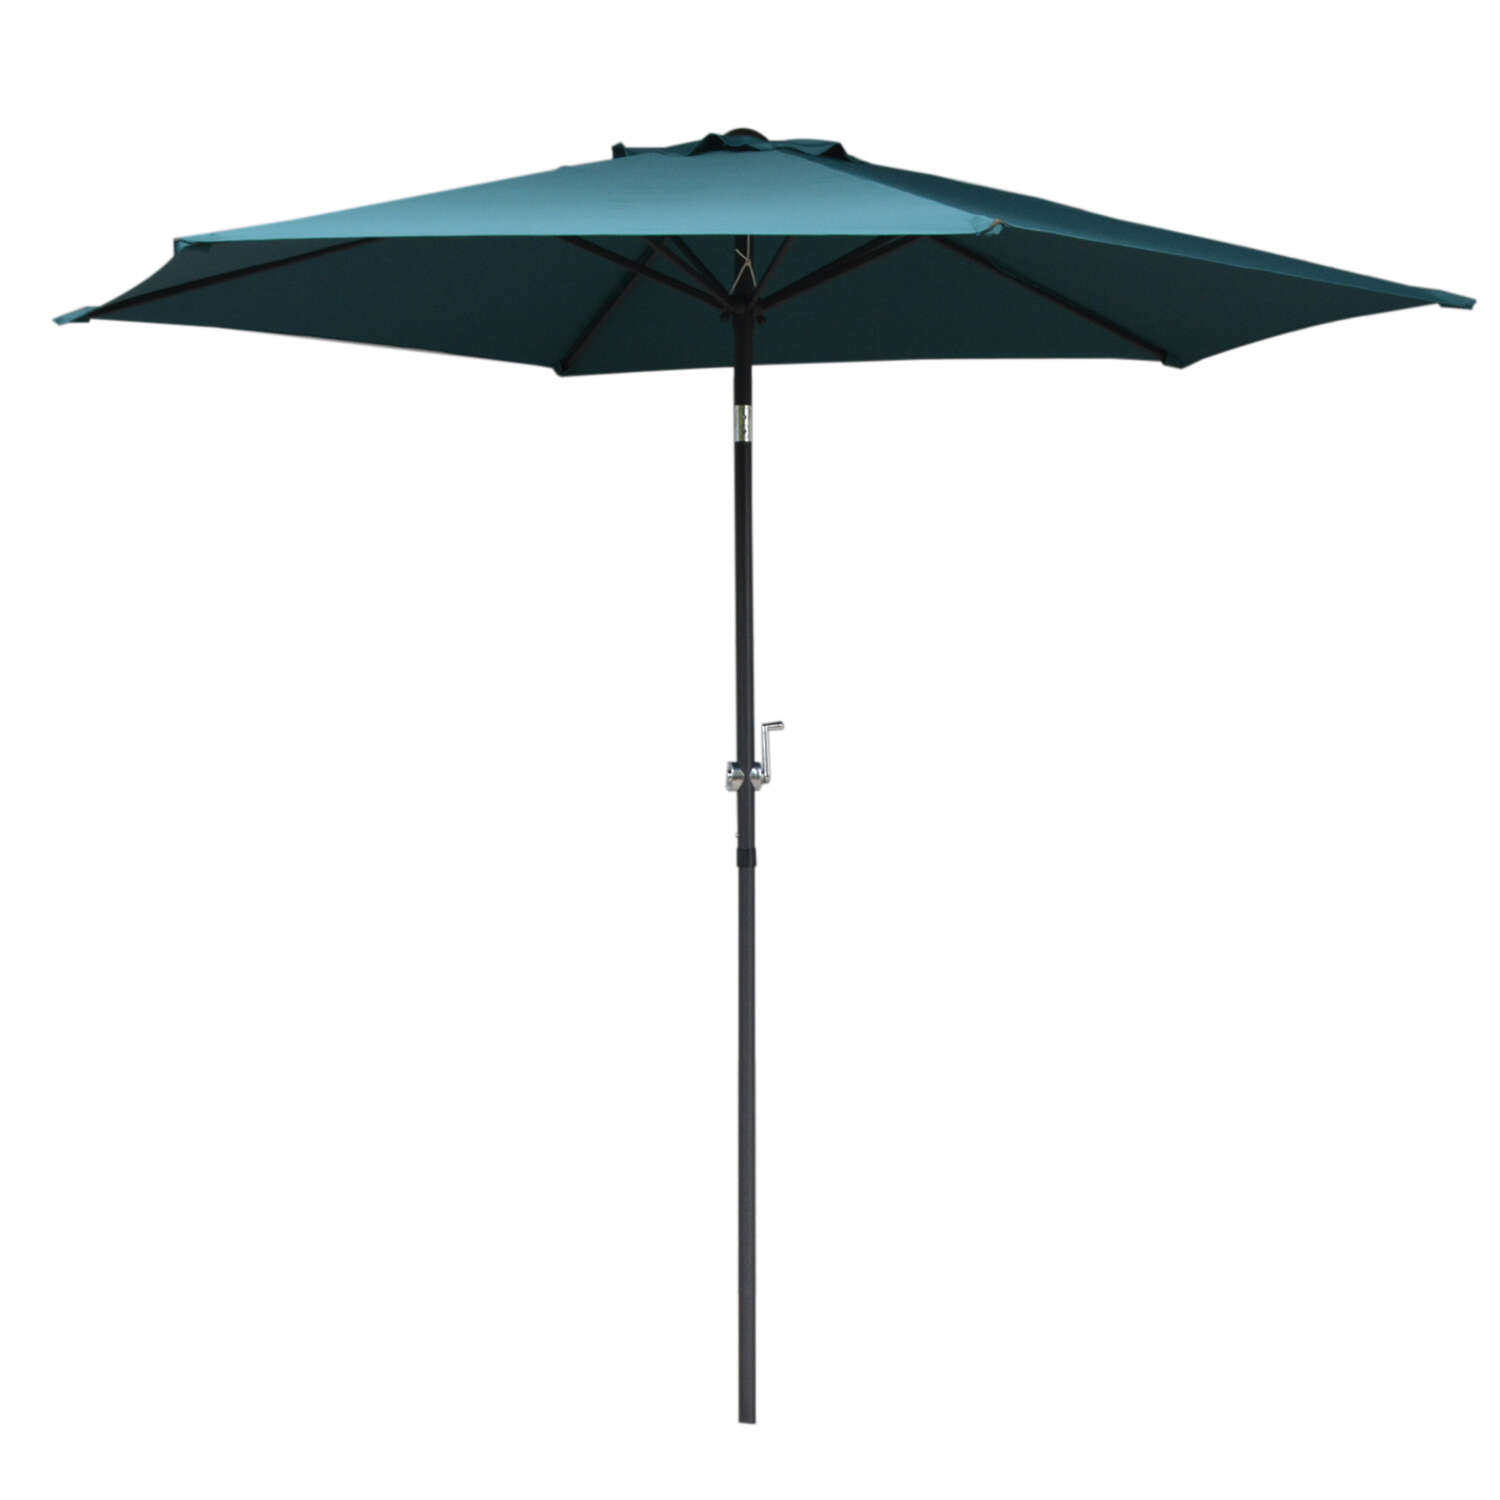 Living Accents  Cortland  9 ft. Tiltable Peacock Blue  Market  Umbrella